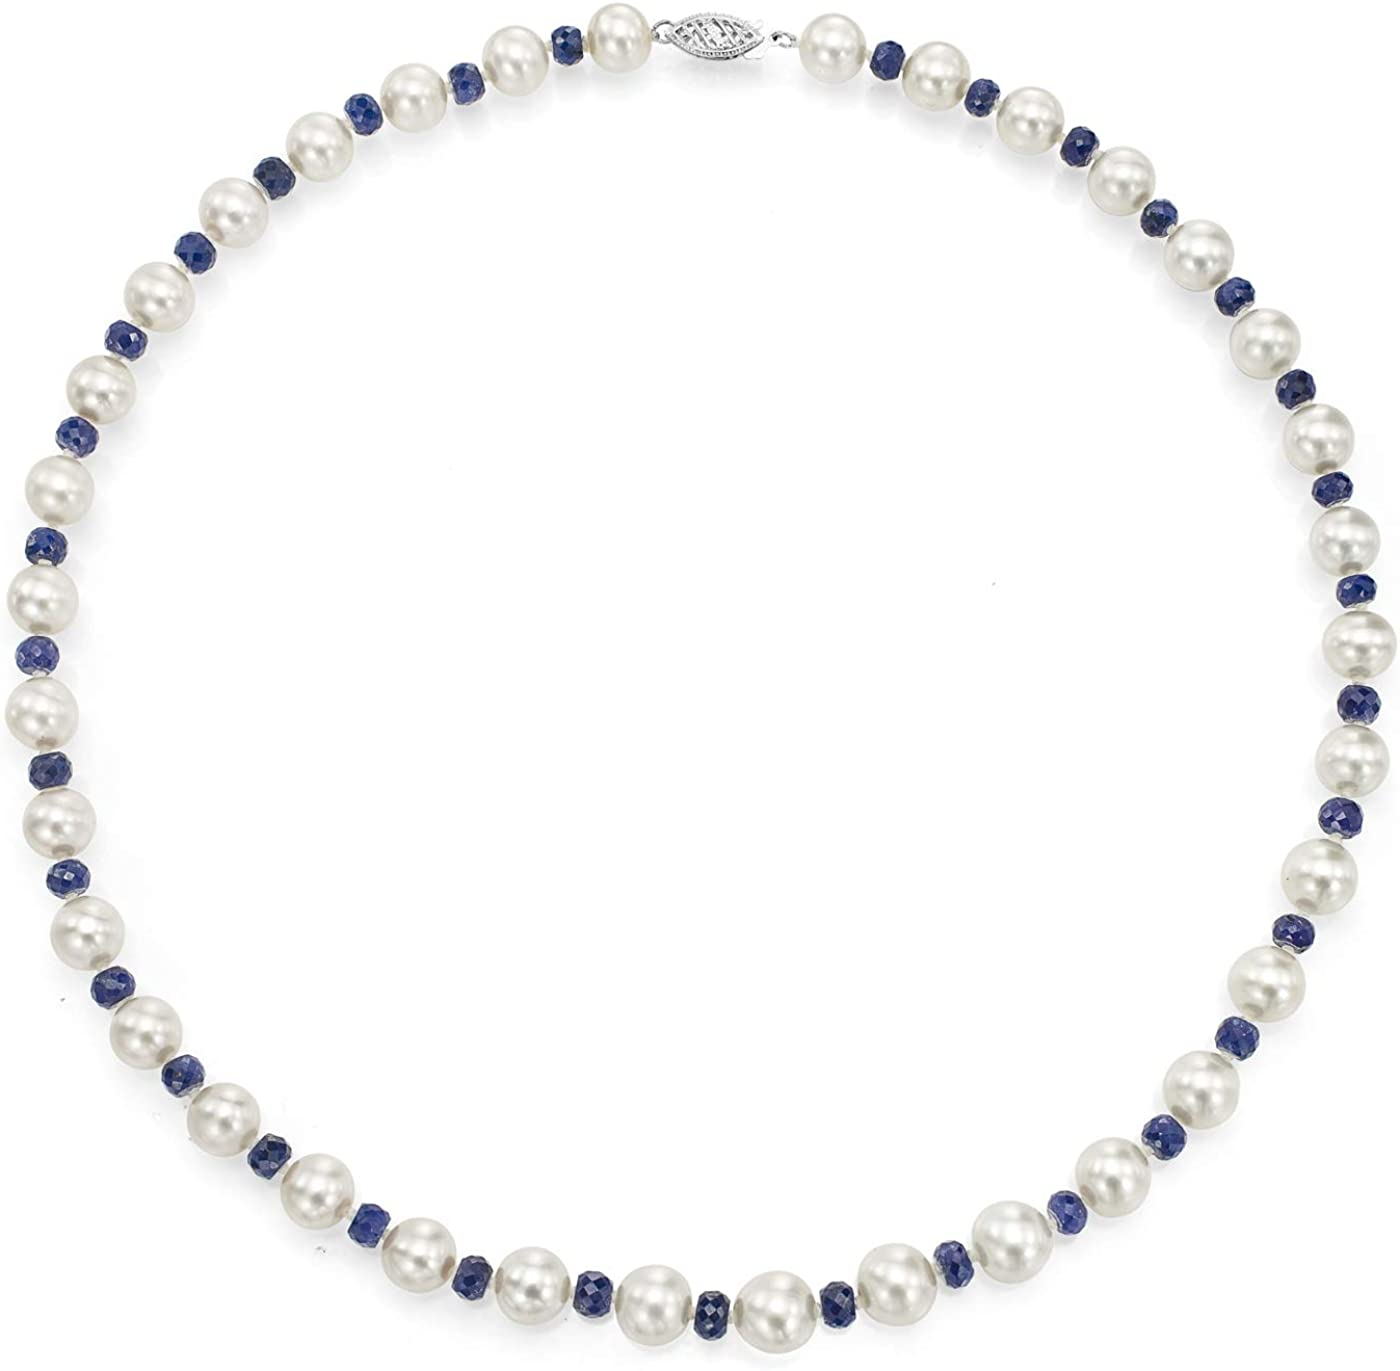 14K White Sales for sale Gold Freshwater Cultured Simulate Luxury goods Pearl Necklace